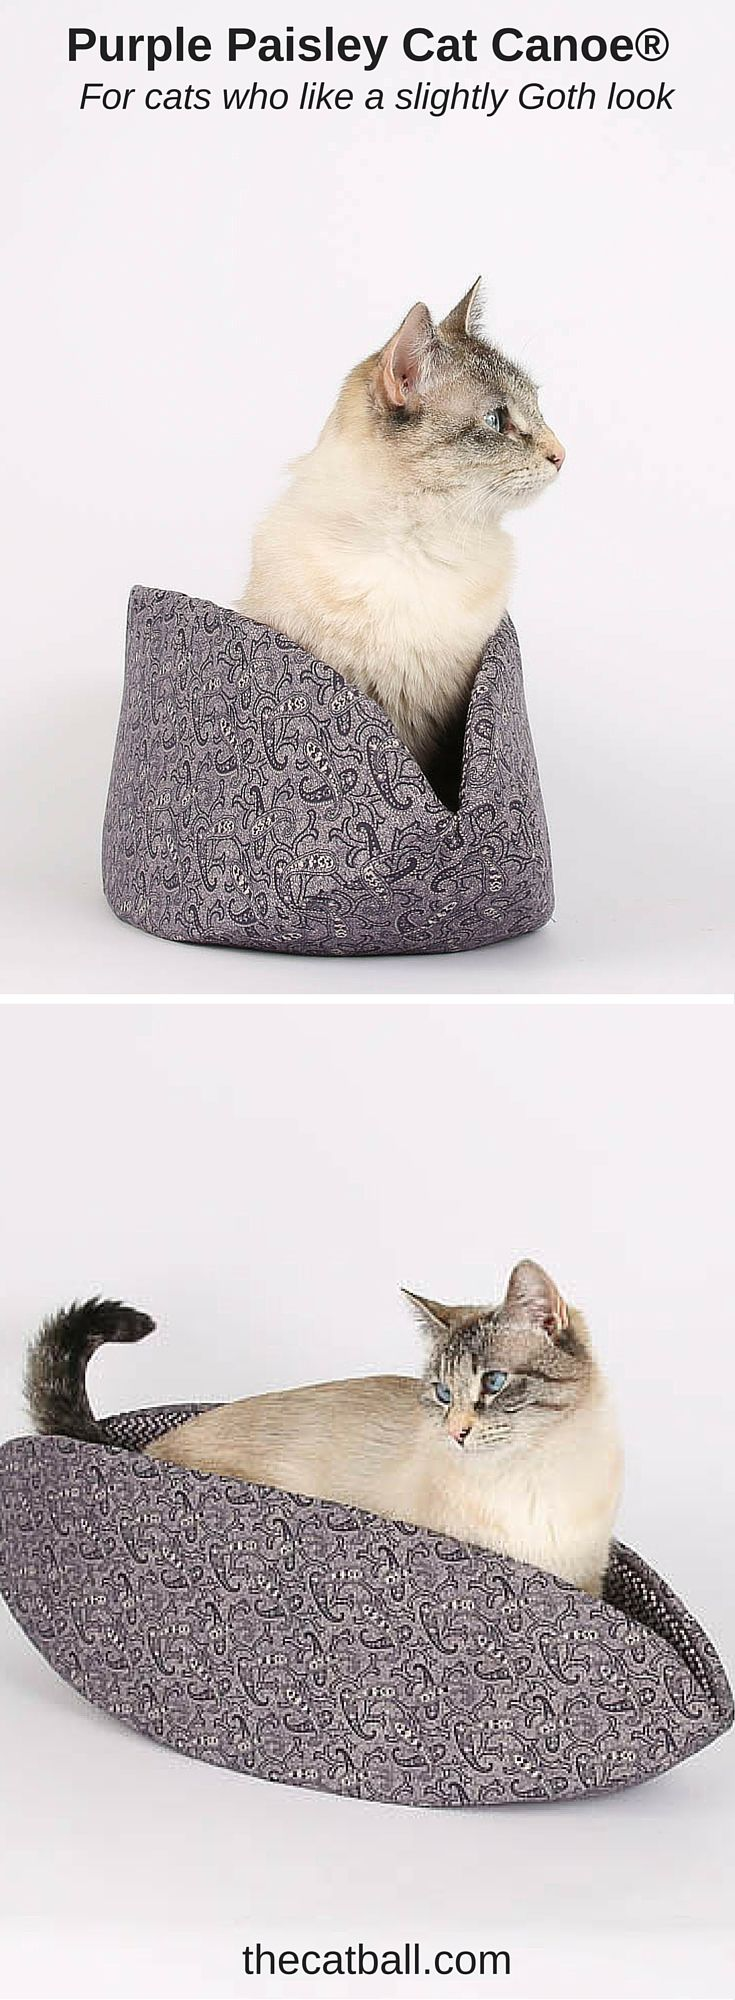 """Does your cat have a preference for a slightly Goth decor? We have the cat bed for you! The purple paisley Cat Canoe® is made with a fabric from the Riley Blake """"Mourning"""" collection, a series of fabrics based on Victorian design. This subtle, dusty purple is a nice option if you (and your cat) prefer a subdued look."""